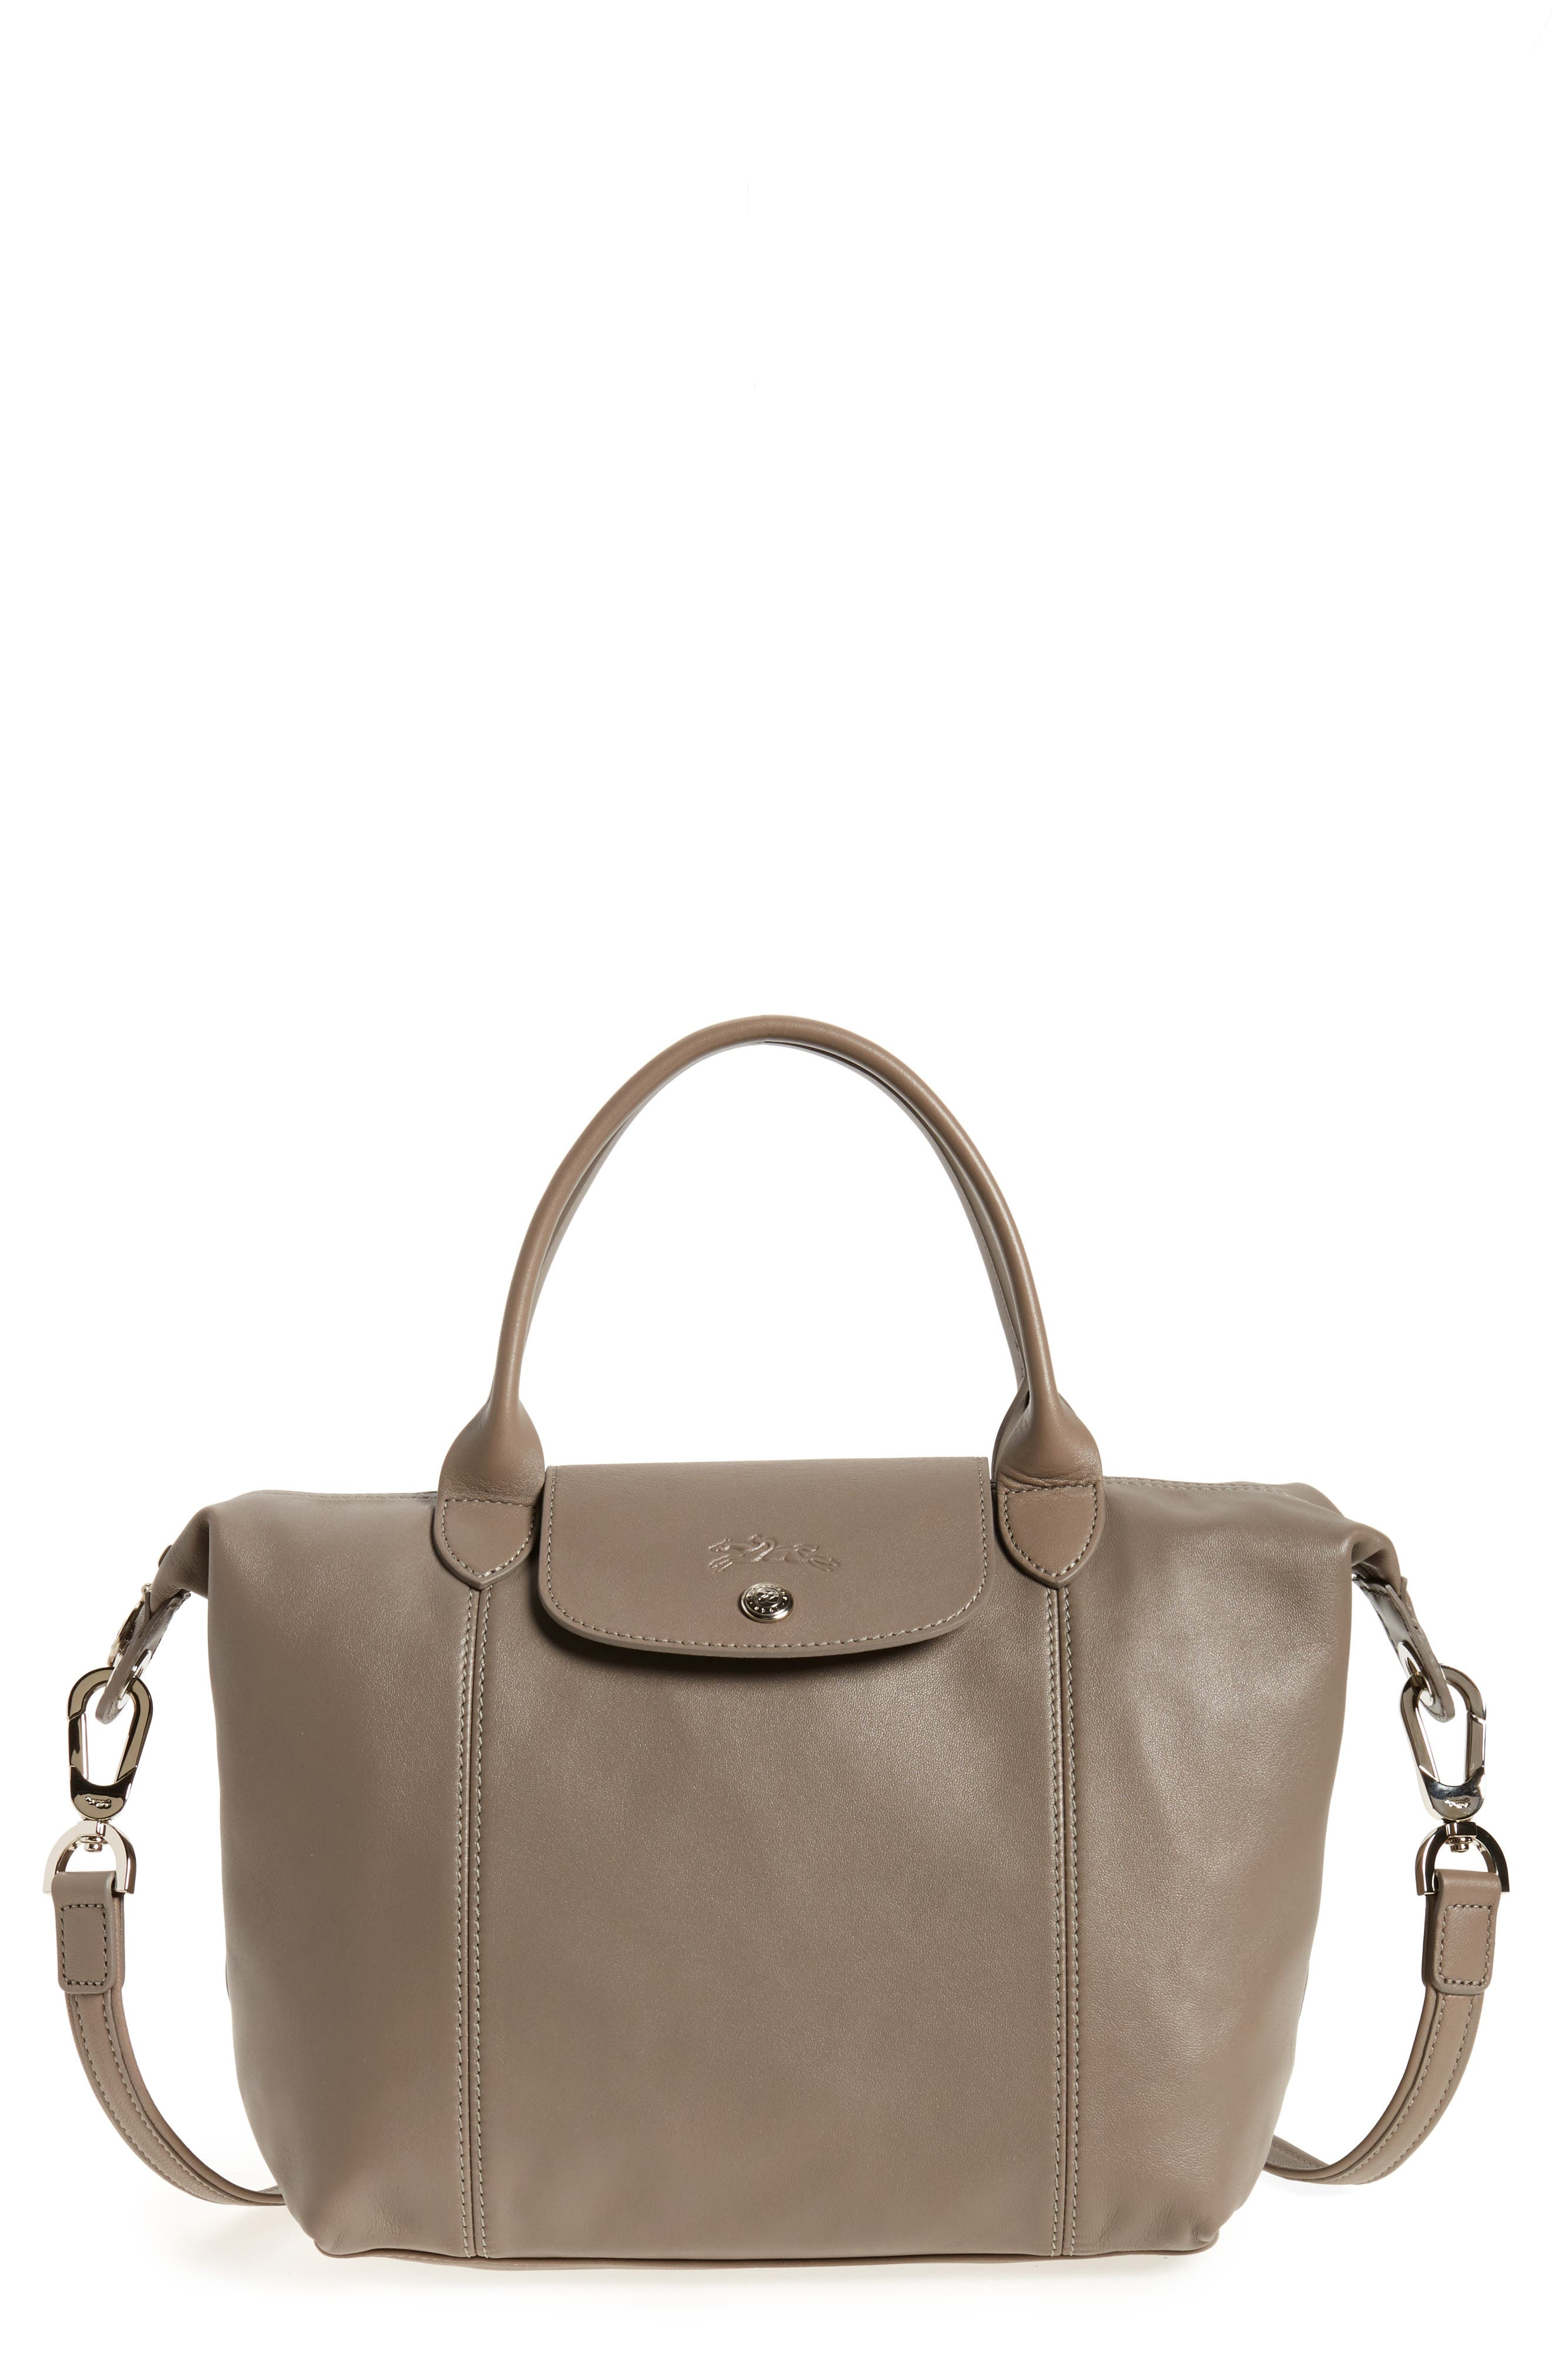 Small 'Le Pliage Cuir' Leather Top Handle Tote,                             Main thumbnail 2, color,